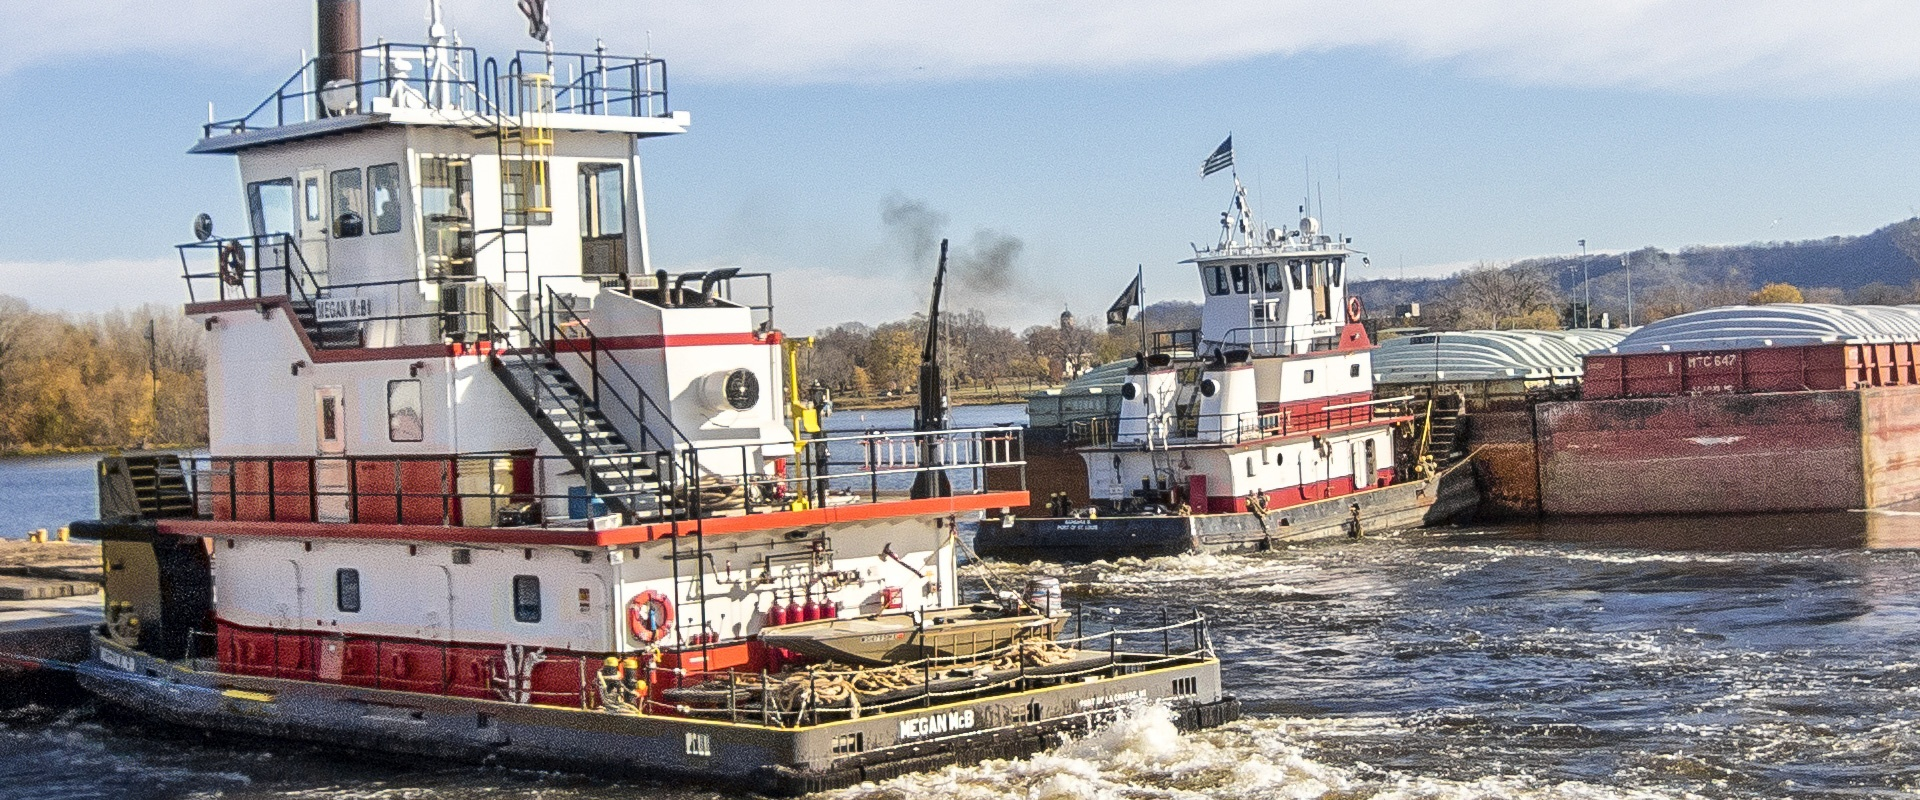 harbor management, barge transportation, inland waterways, marine construction, mississippi river construction, switching and fleeting